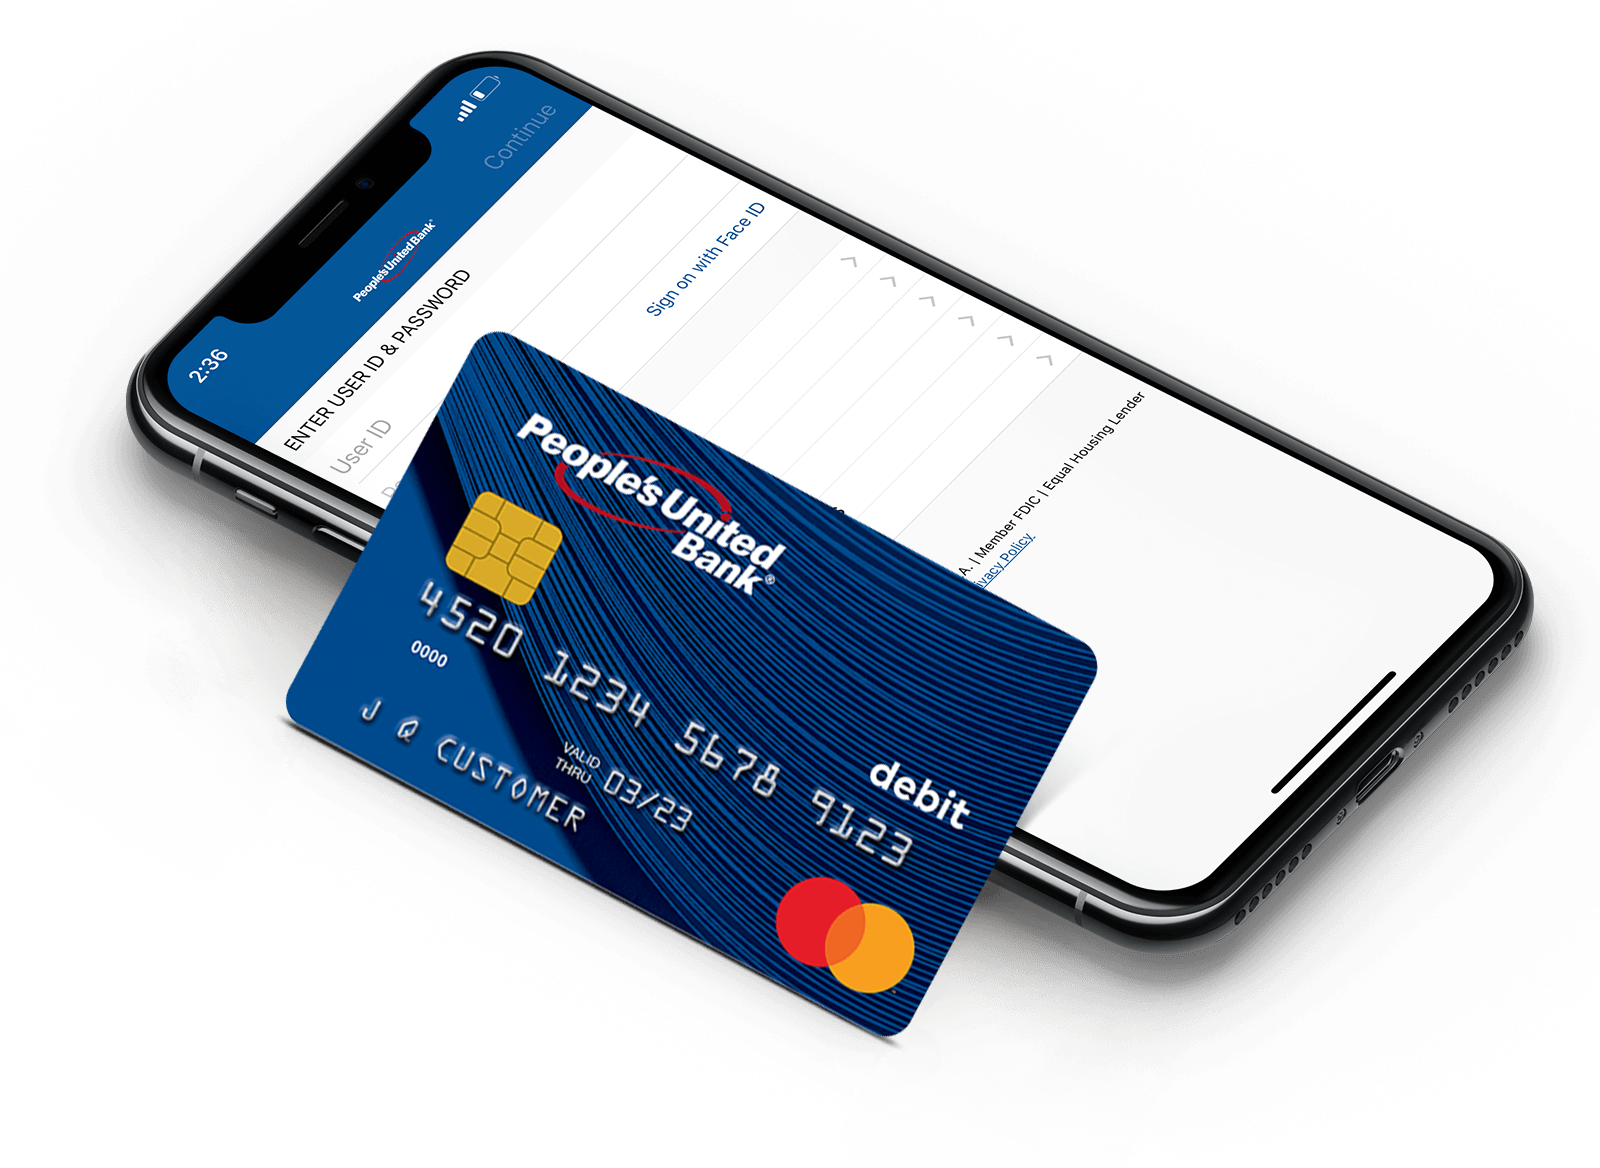 People's United Bank Mastercard® Debit Card leaning on a mobile phone